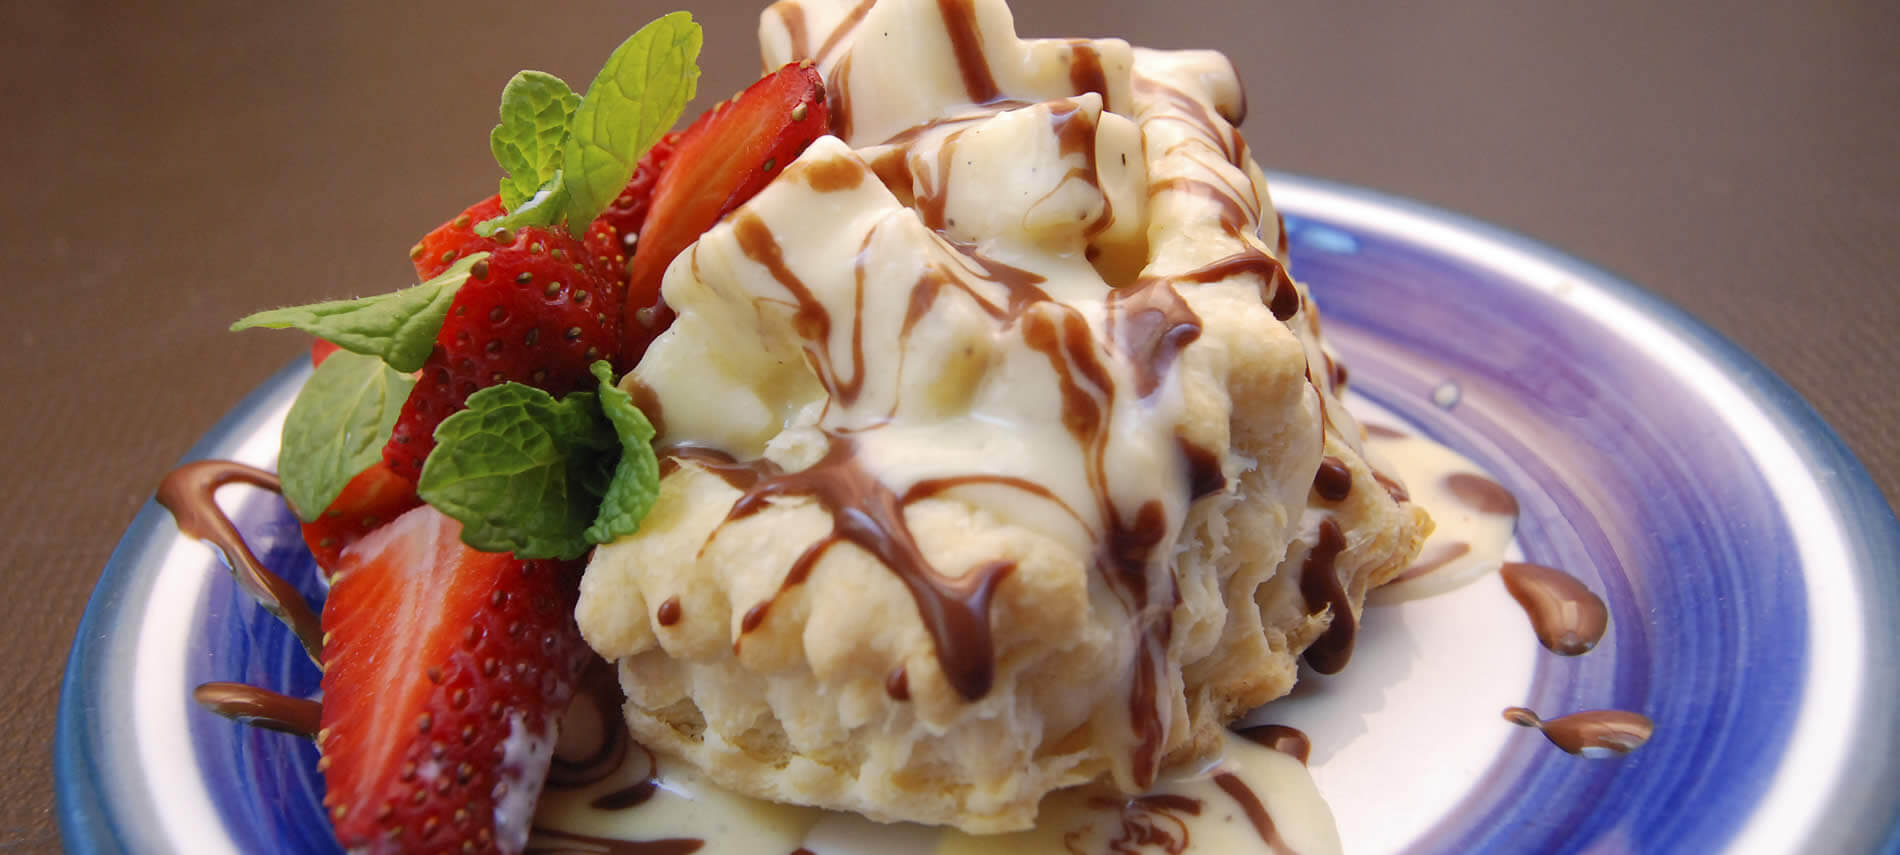 White and blue plate topped with delicious dessert drizzled with brown and white sauce and red strawberries